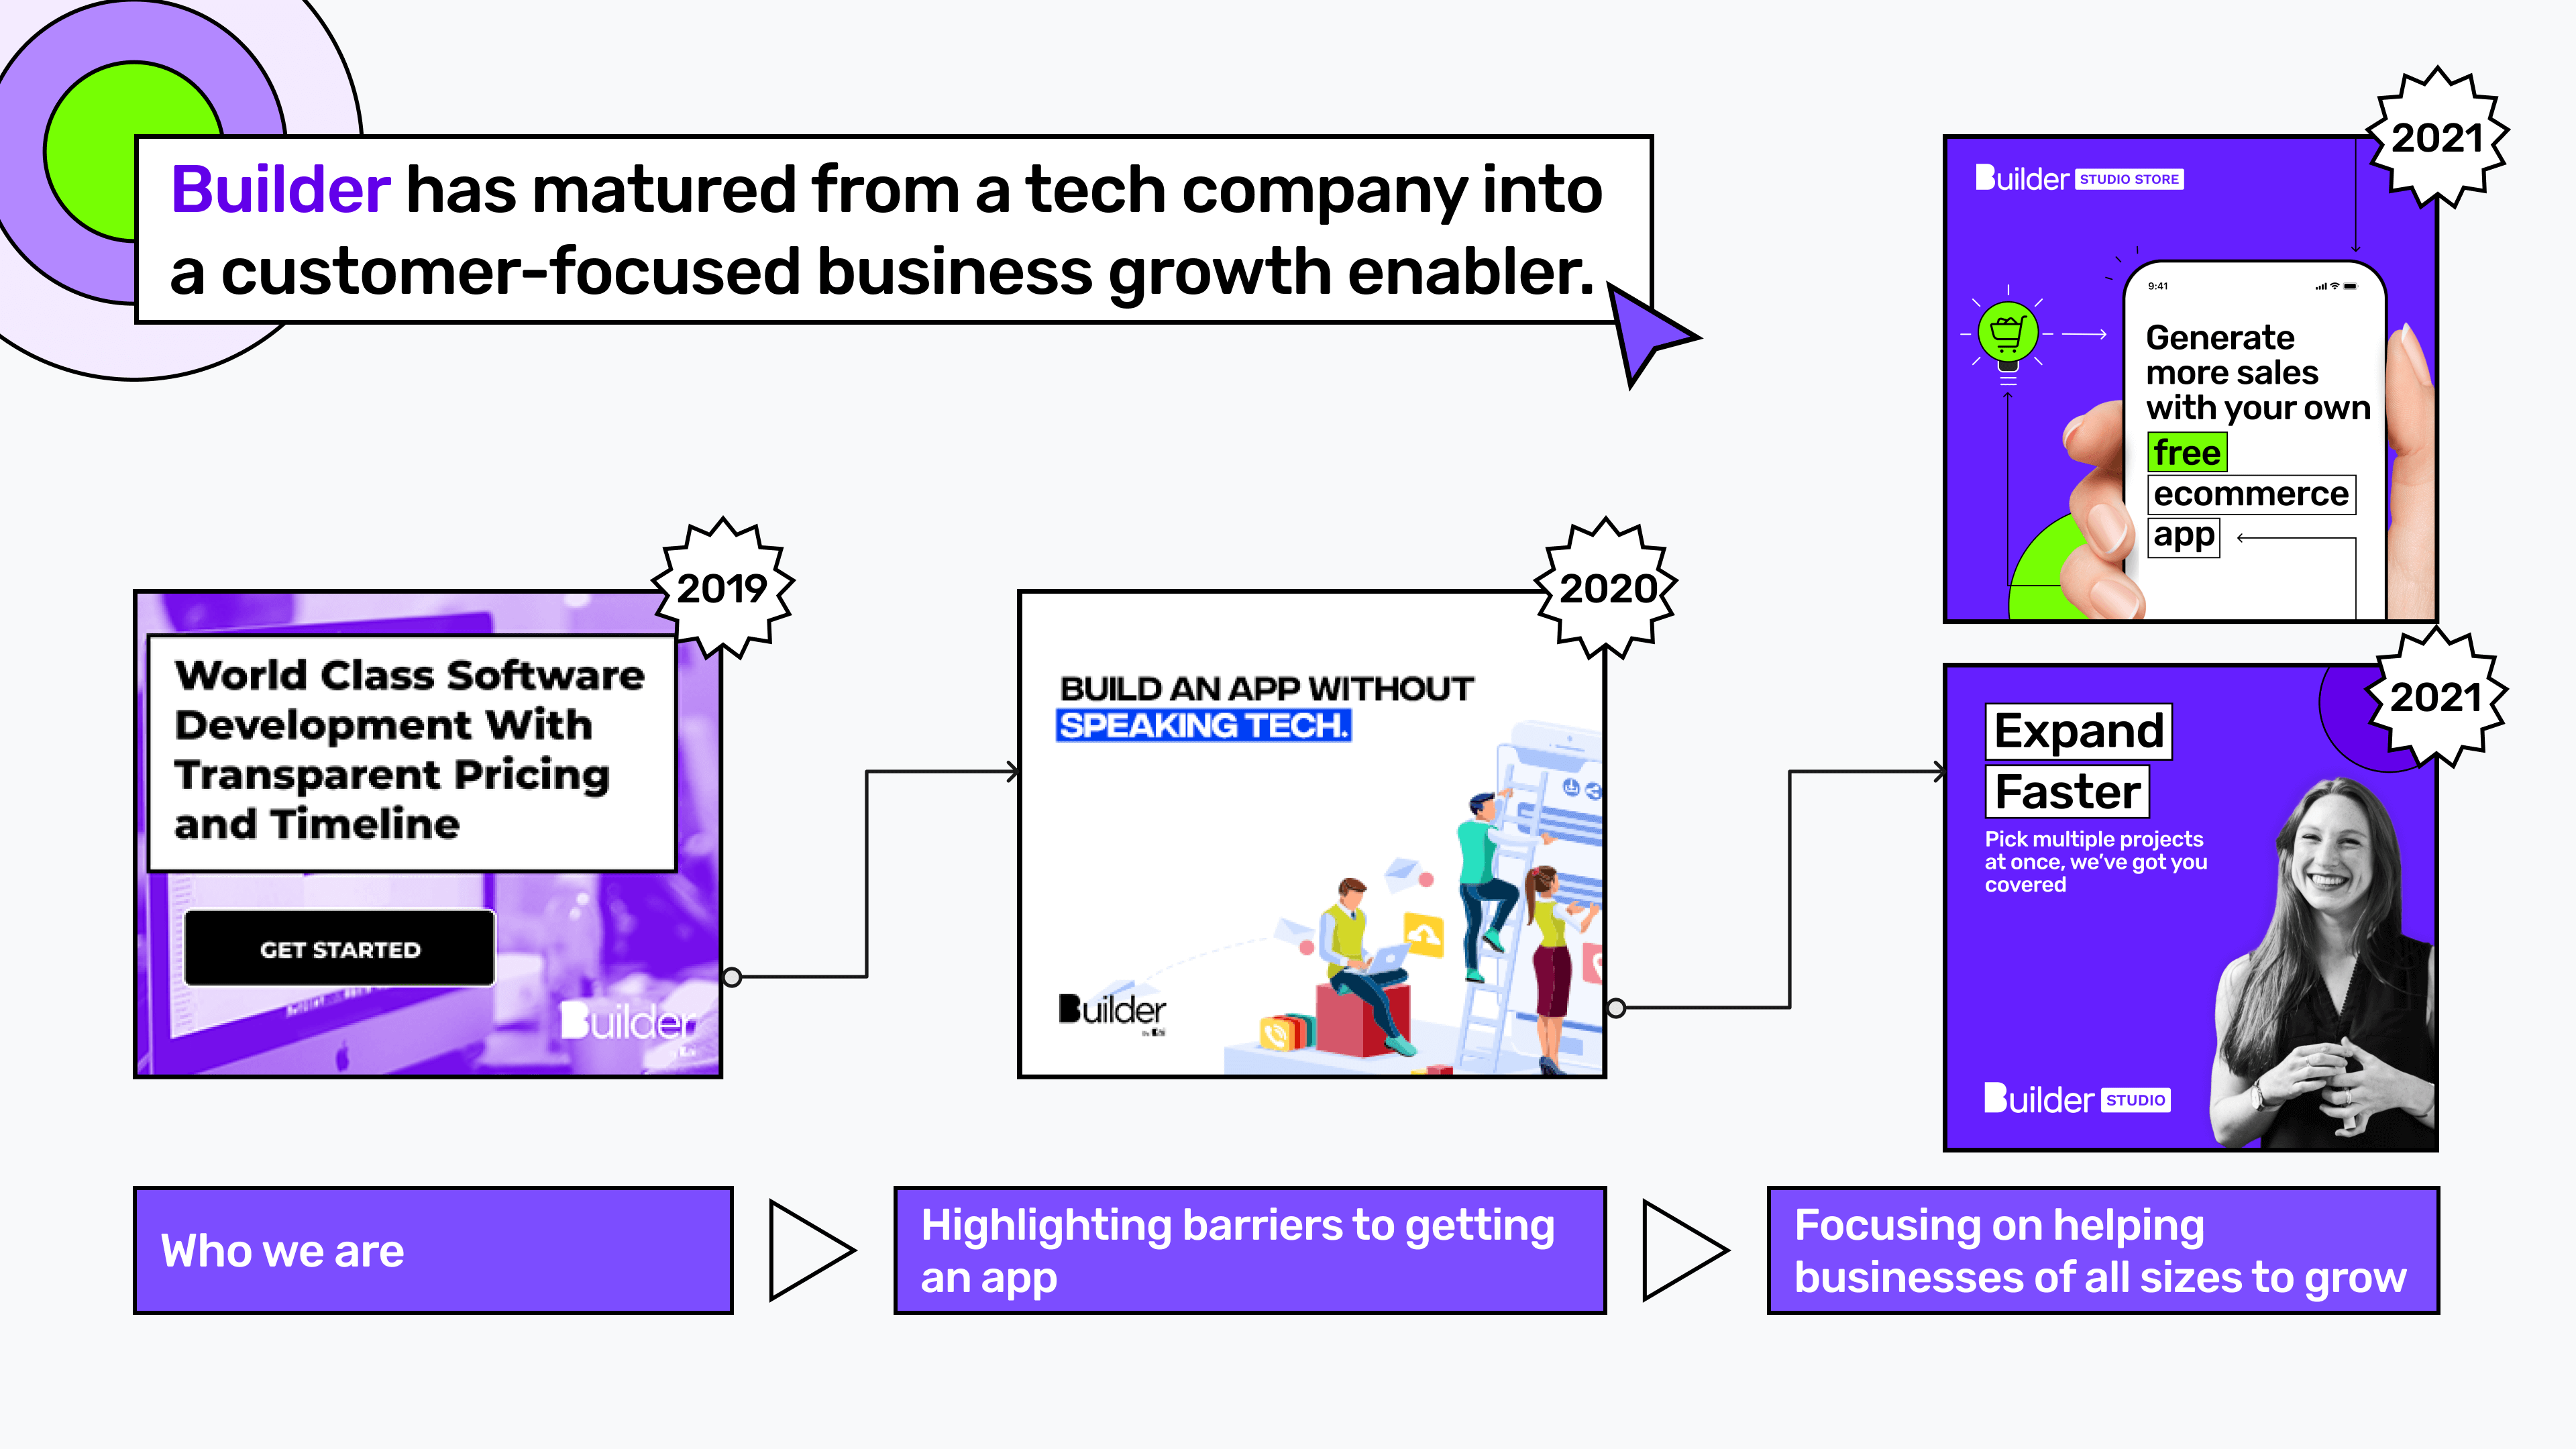 Builder.ai has matured form a tech company into a customer-focused business growth enabler.